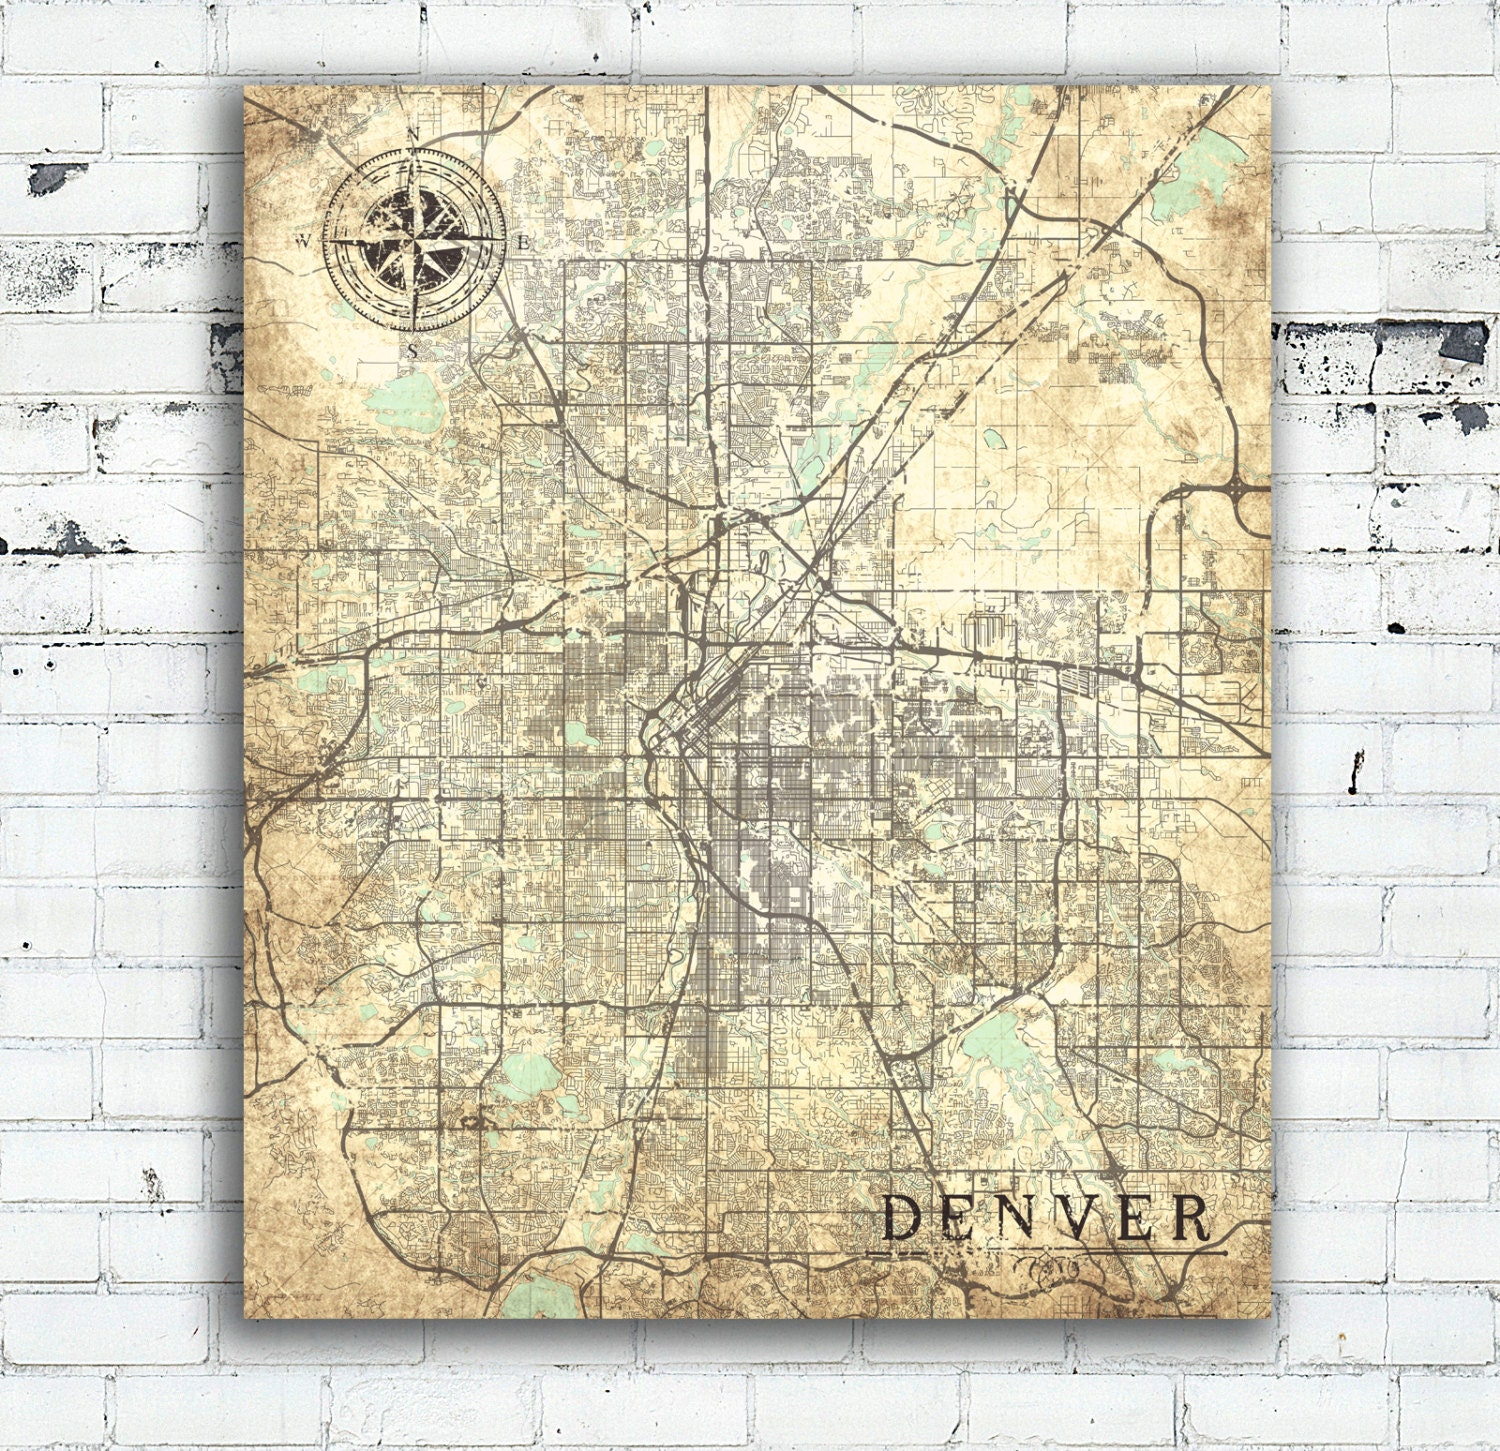 DENVER CO Canvas print Colorado CO Vintage map Denver Co ... on denver neighborhood map, denver city limits map, denver city map online, denver surrounding cities, denver metro area city maps, denver city council map, denver colorado usa map, denver on the map, denver co, university of colorado denver anschutz campus map, denver city park map, denver city map with locations, denver united states map, denver metro map with city boundaries, denver airport map, denver las vegas map, denver castle rock map, denver i-70 colorado exits map, cherry creek denver colorado map, old denver colorado map,